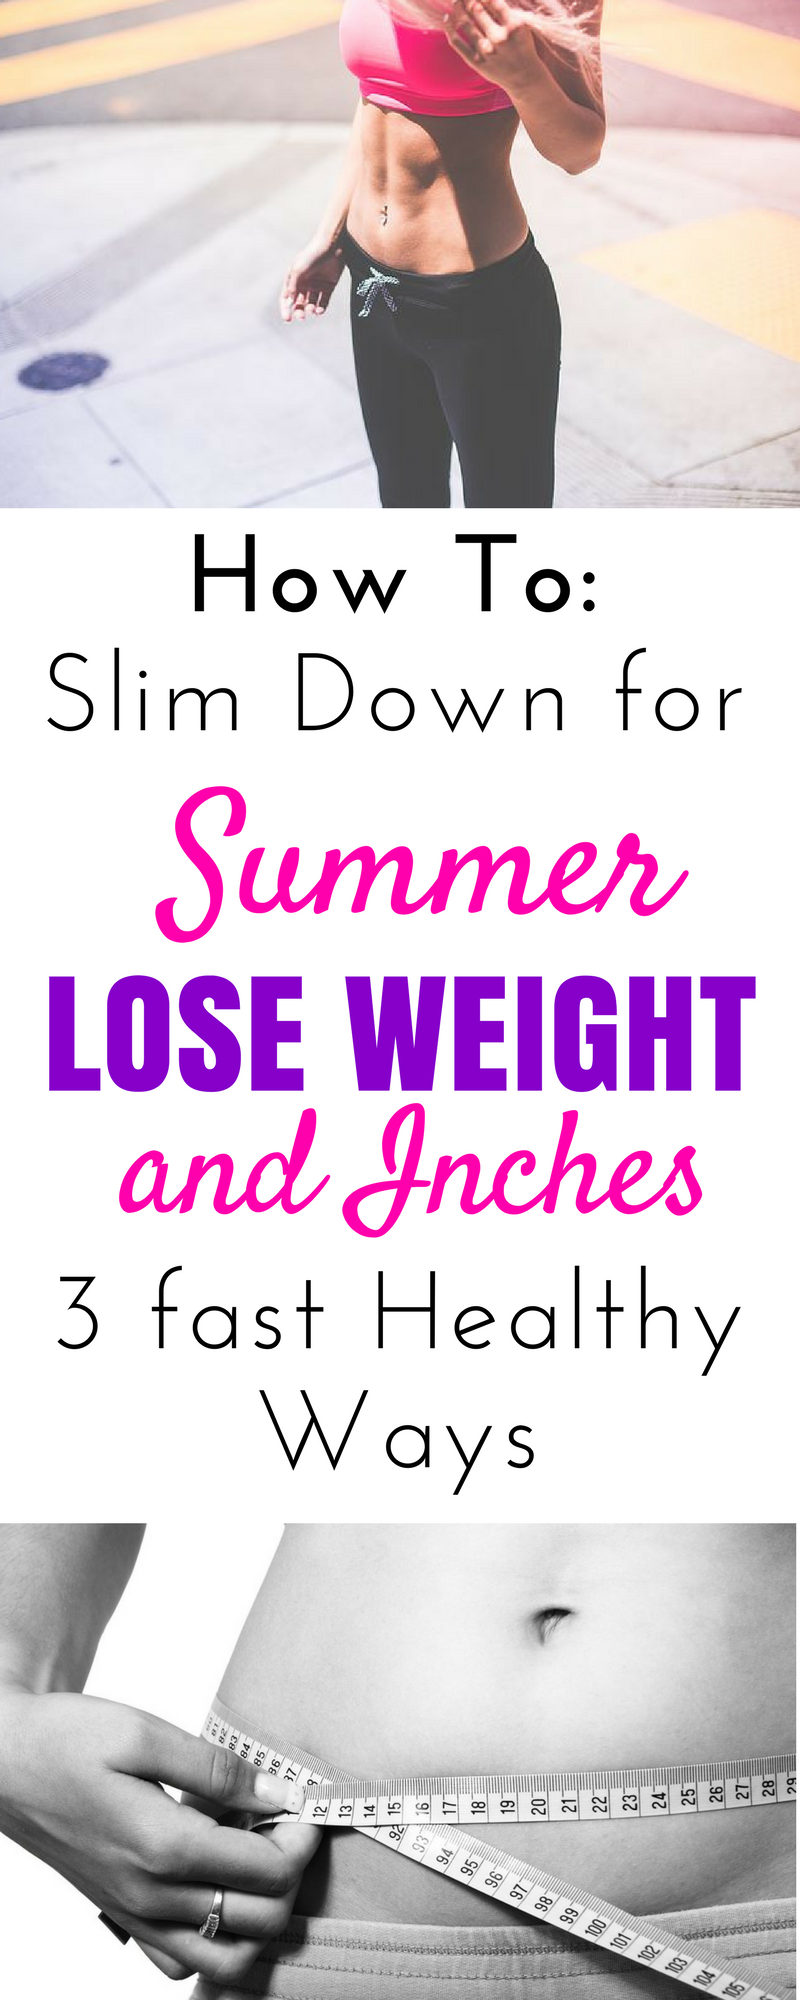 Extreme quick weight loss tips #easyweightloss :)   for reducing weight#weightwatchers #food #healthyliving